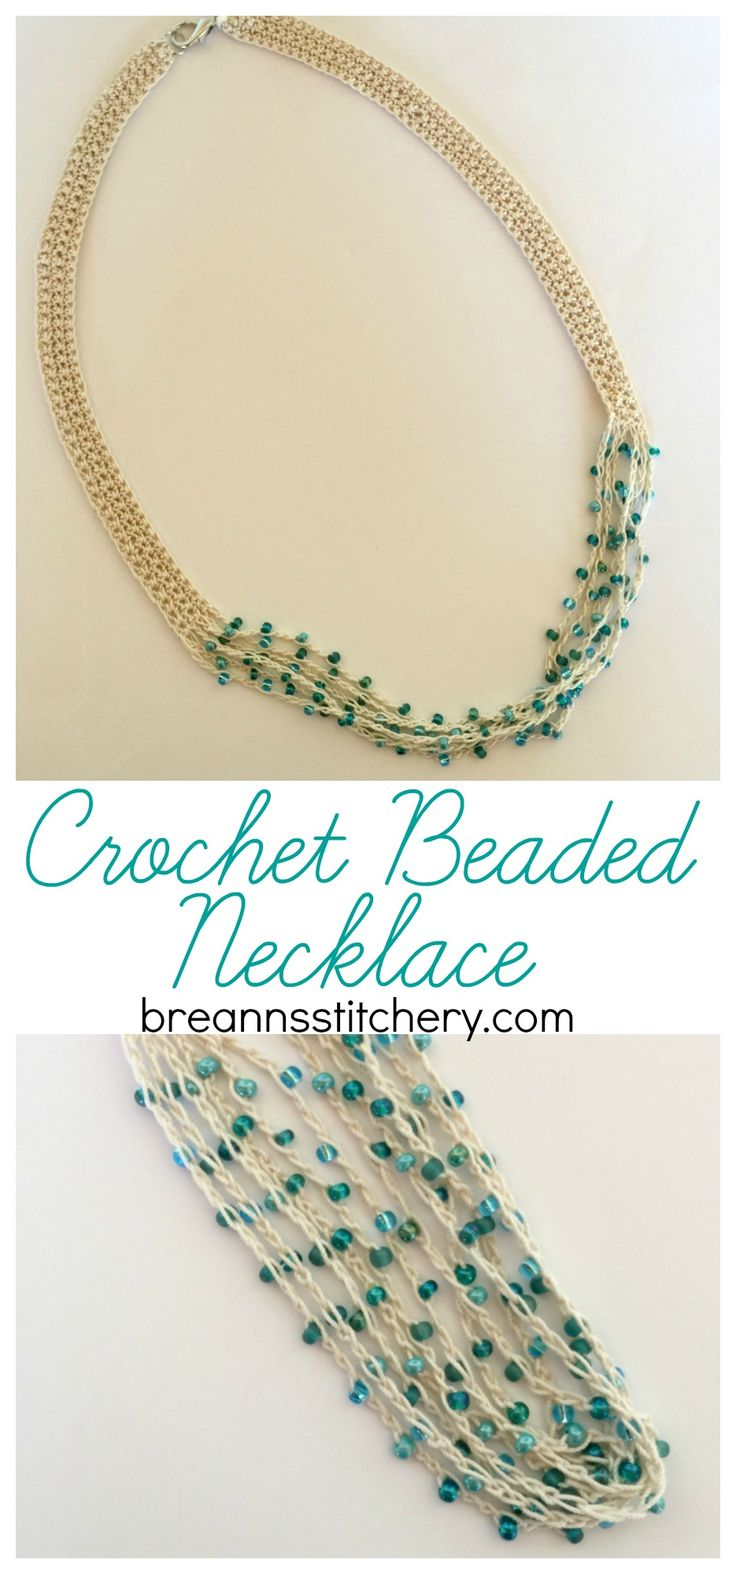 Once you start crocheting jewelry, you won't want to stop! This Crocheted Beaded Necklace is way easier than you think and so much fun. PATTERN Materials: Size 10 crochet thread Size 2 mm hook 90 Czech glass beads Jewelry clasp Needle Level: easy/beginner Pattern Notes & Stitches to Know: sc – single crochet ch – chain NECKLACE You can find the pattern HERE at Lady Behind the Curtain! I hope you enjoy this pattern and love making your own jewelry as much as I do. Looking for more pat...